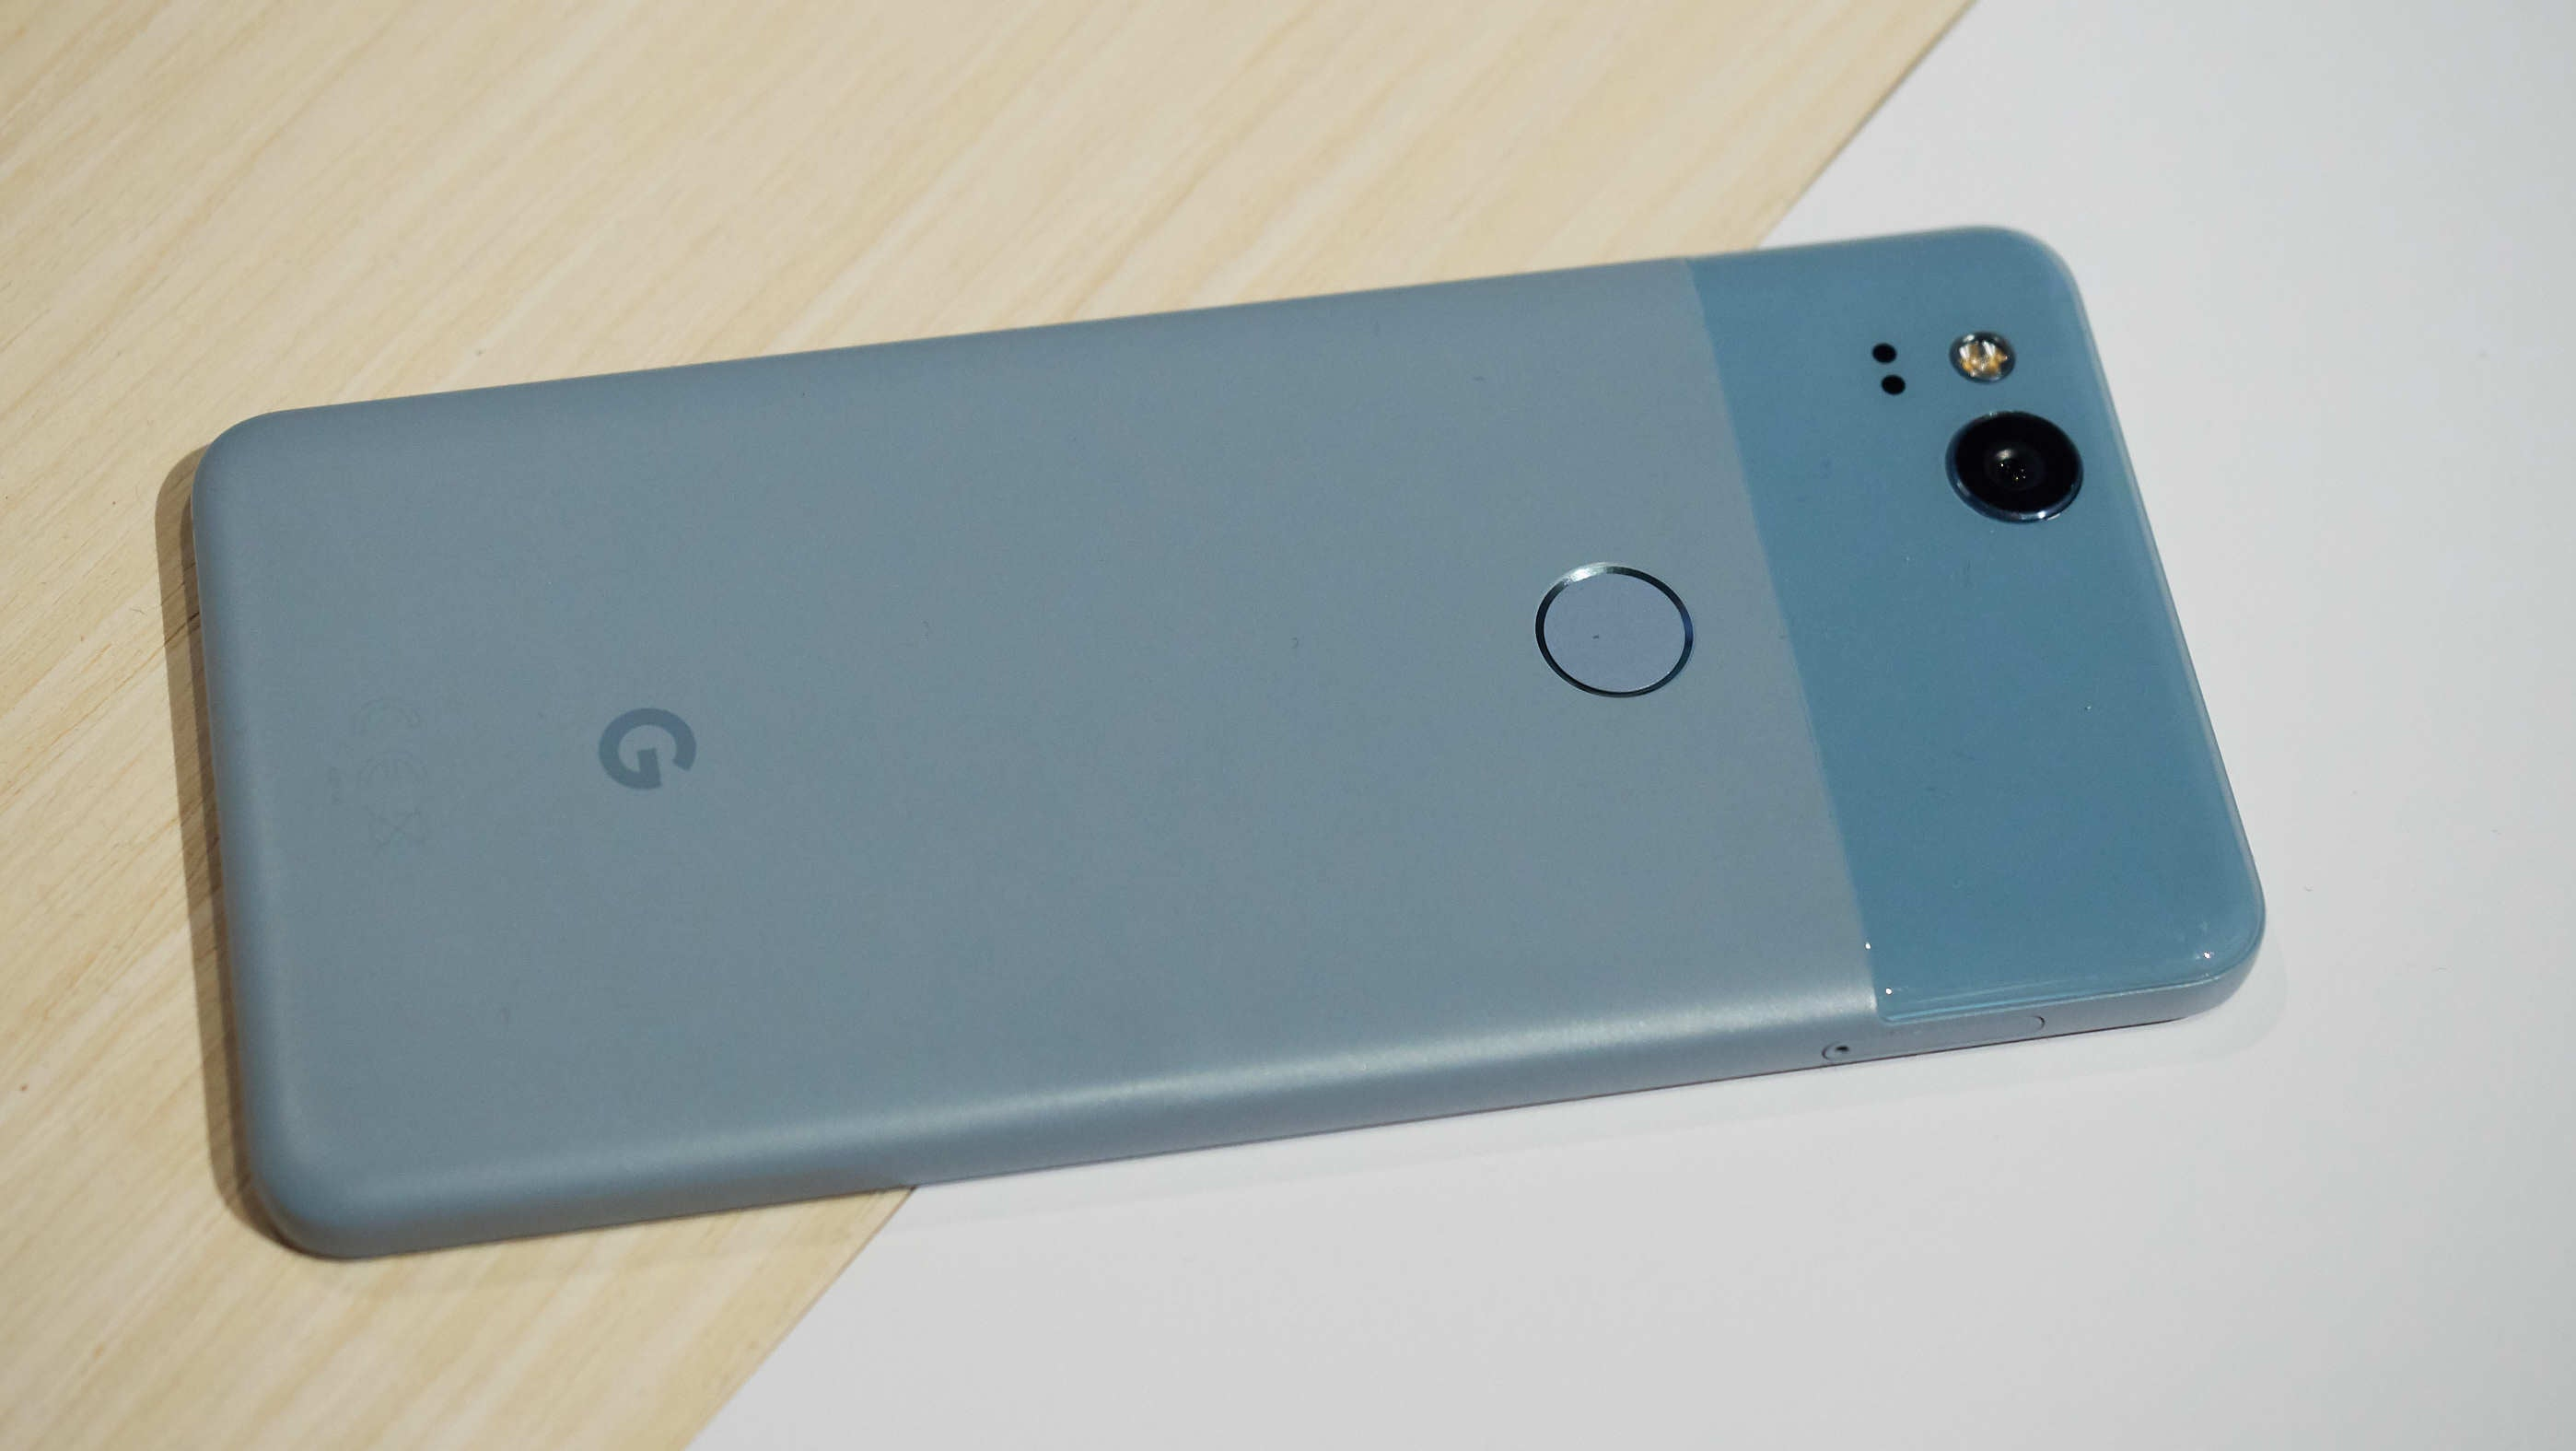 If This Leak Is Legit, The Pixel 3 XL Will Be Google's Ugliest Phone Yet